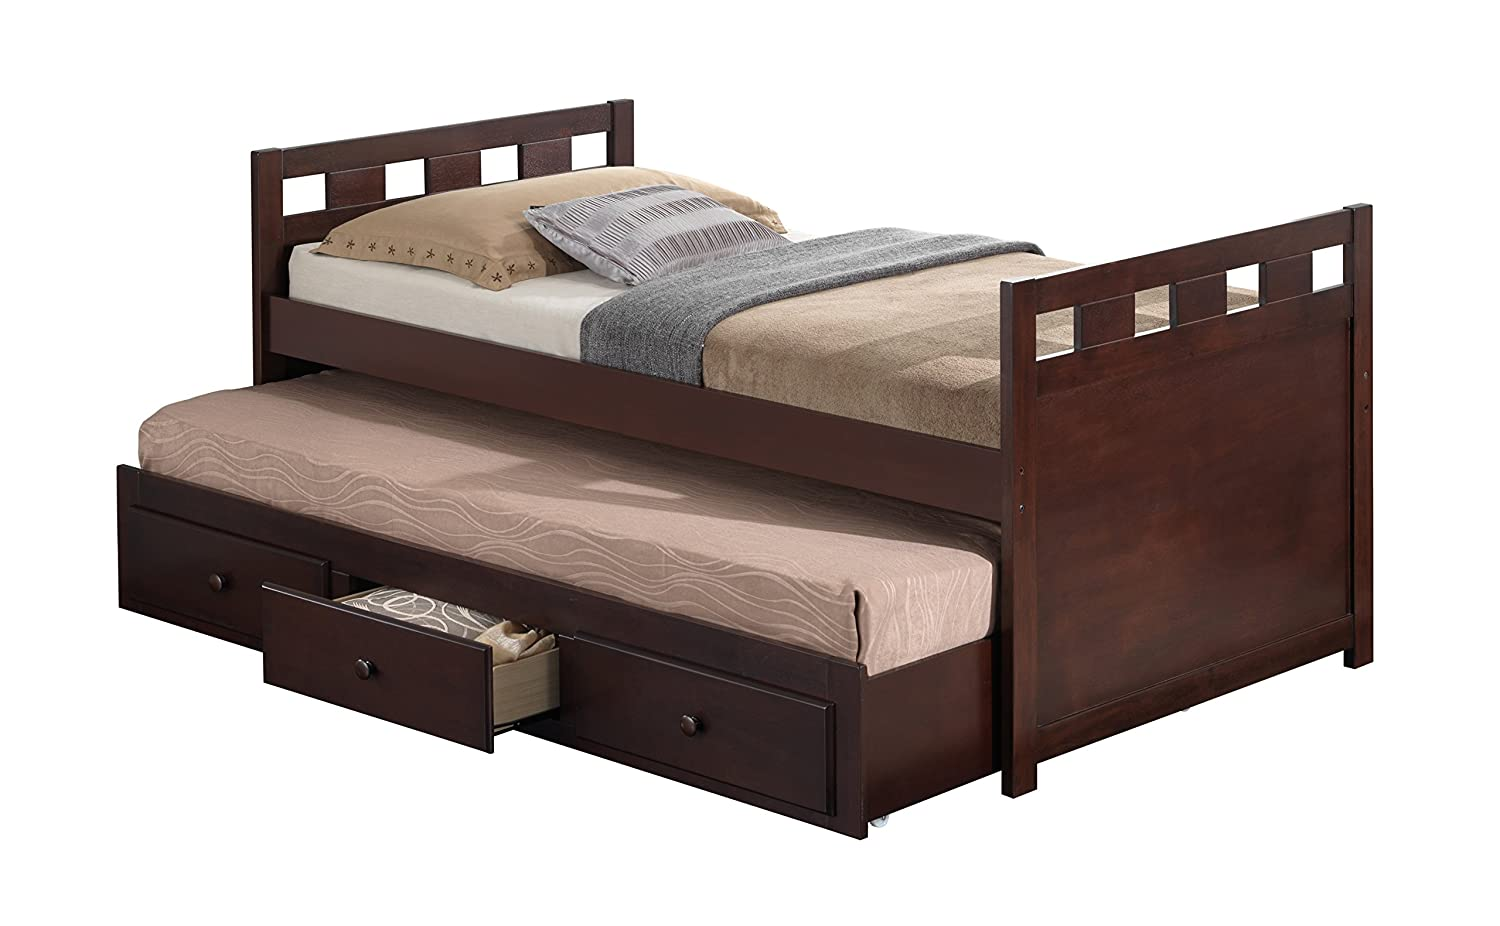 amazoncom broyhill kids bed with trundle bed and drawers espresso kitchen u0026 dining